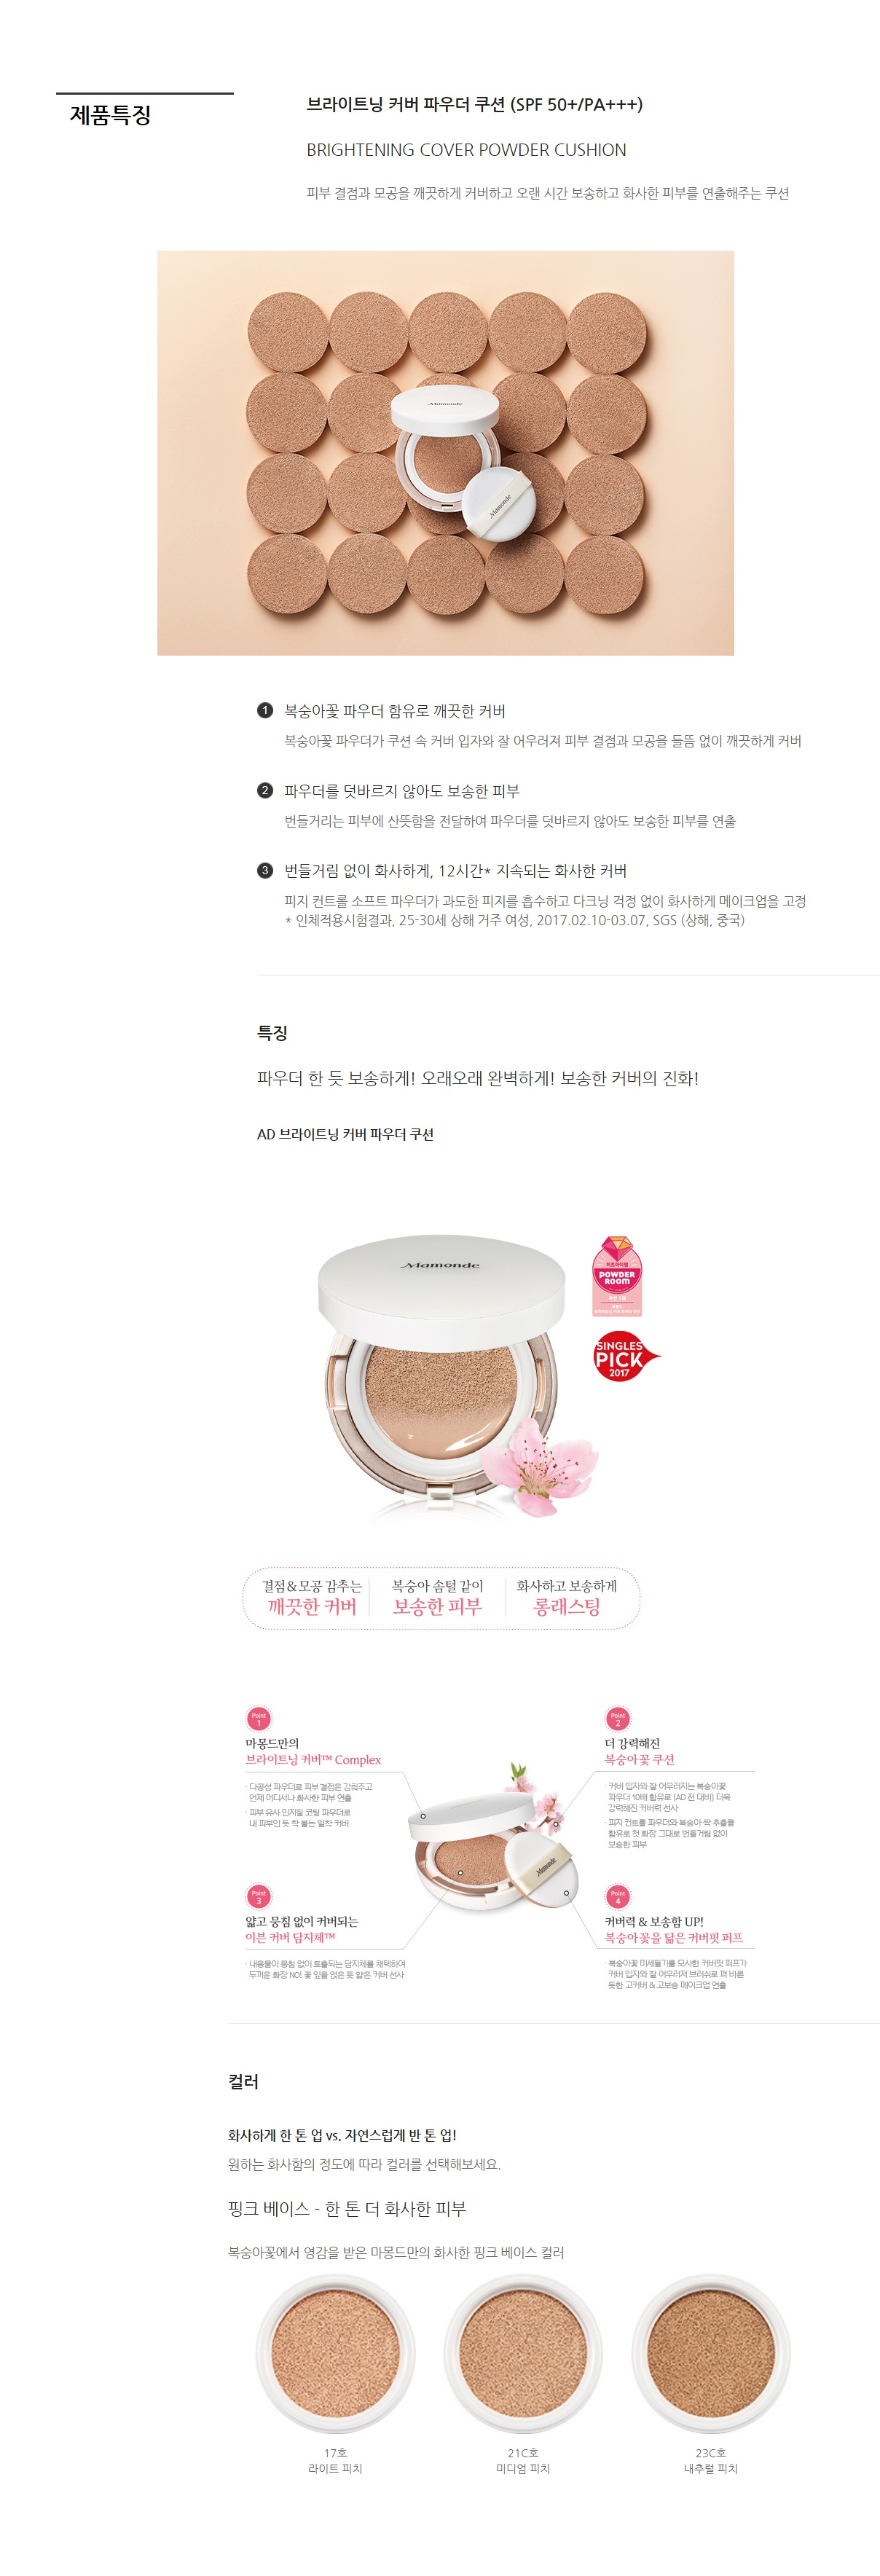 Mamonde Brightening Cover Powder Cushion 30g korean makeup product online shop malaysia germany macau1